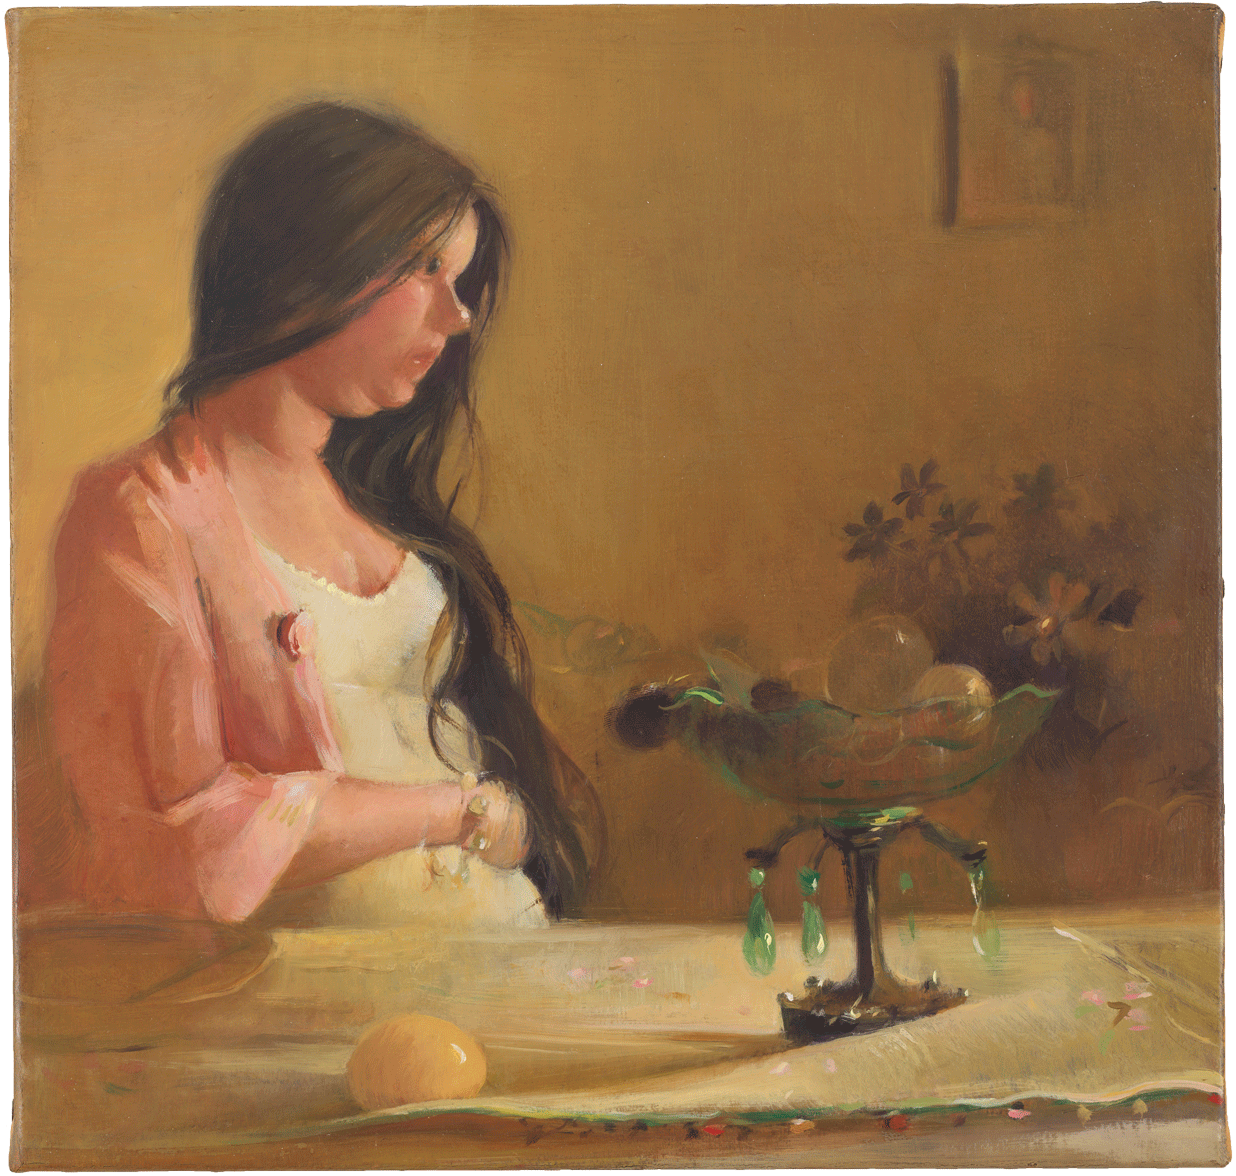 Lisa Yuskavage, Wee Morning, 2004, oil on linen, 10 x 10 3/8 inches (Private Collection, image courtesy of David Zwirner Gallery)